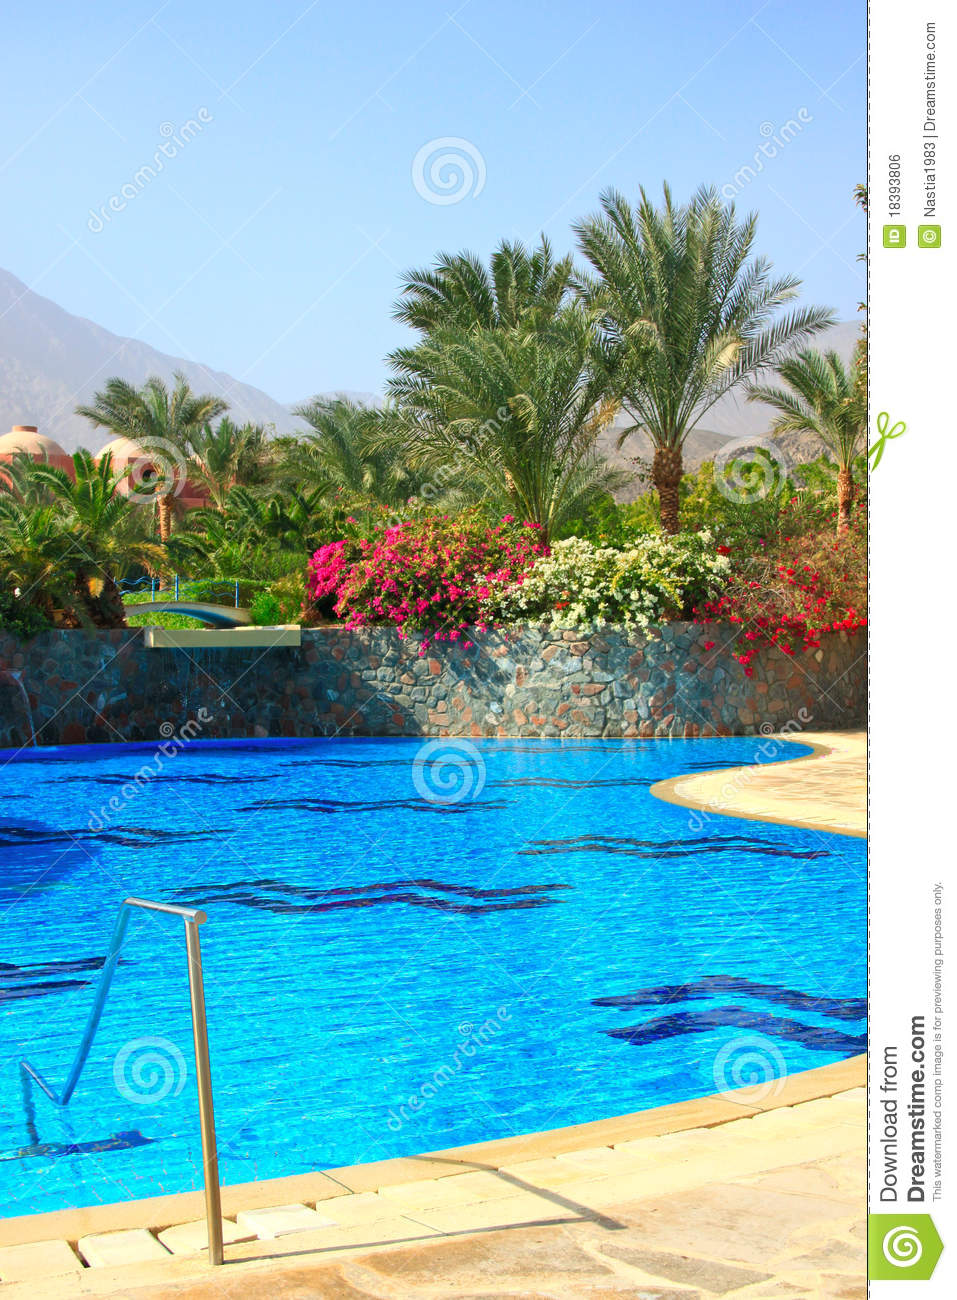 Swimming pool near palms royalty free stock image image 18393806 for Swimming pools open today near me